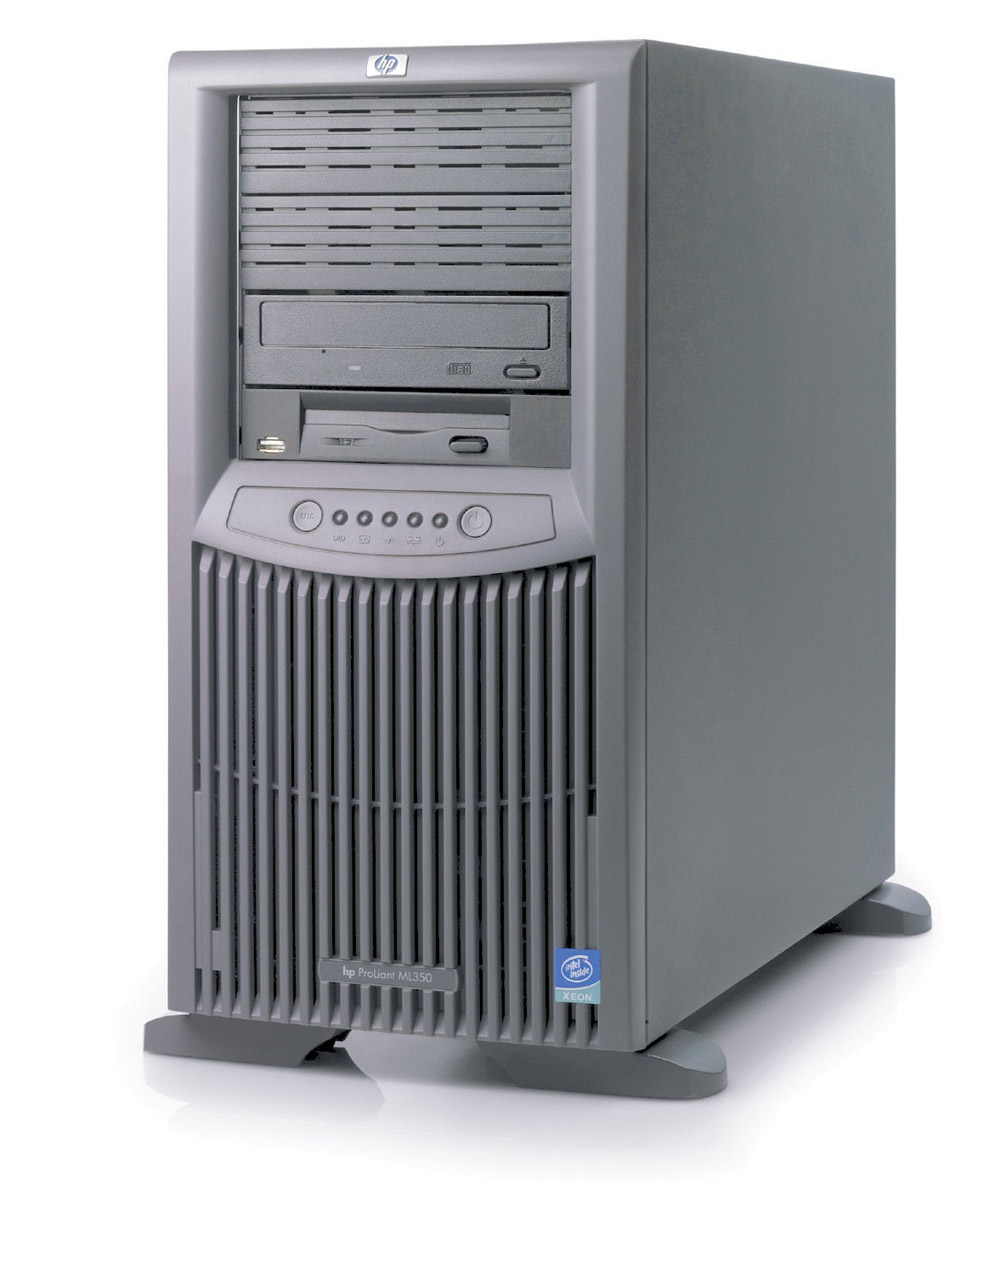 Сервер HP ProLiant ML350 G4p Server Rack XeonDP-3.0/2Mb/800MHz,   512Mb PC2-3200/400MHz, Ultra320-SCSI (max. 6x300Gb+2x300Gb), SA641, HotPlug, 6/6 PCI, CD, FDD, Gigabit NIC